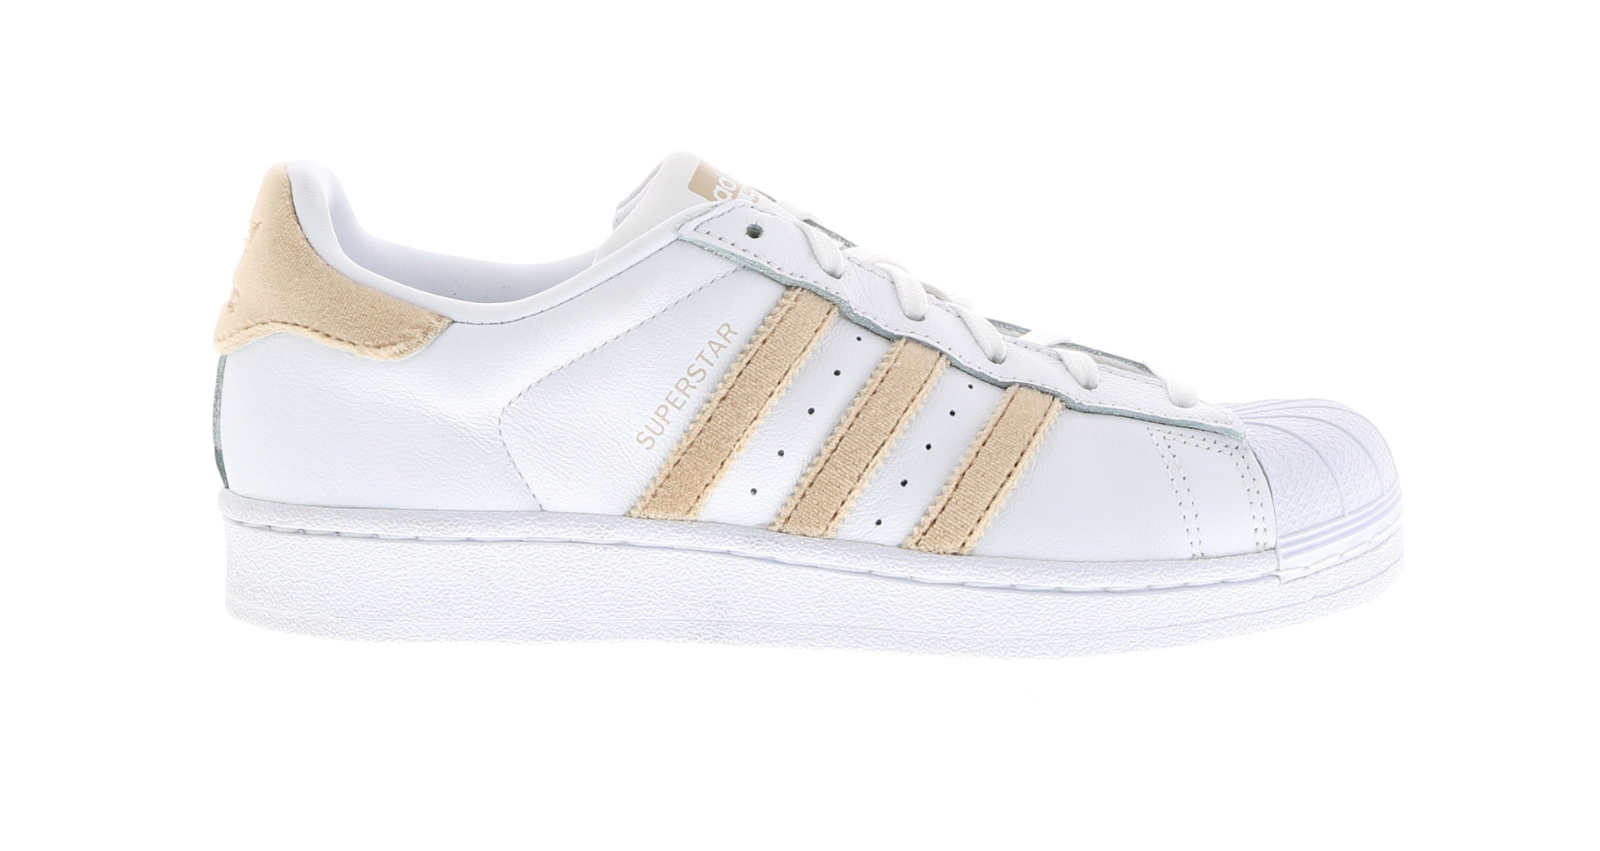 Femme ADIDAS SUPERSTAR W Blanc Leather Casual Trainers BA7493